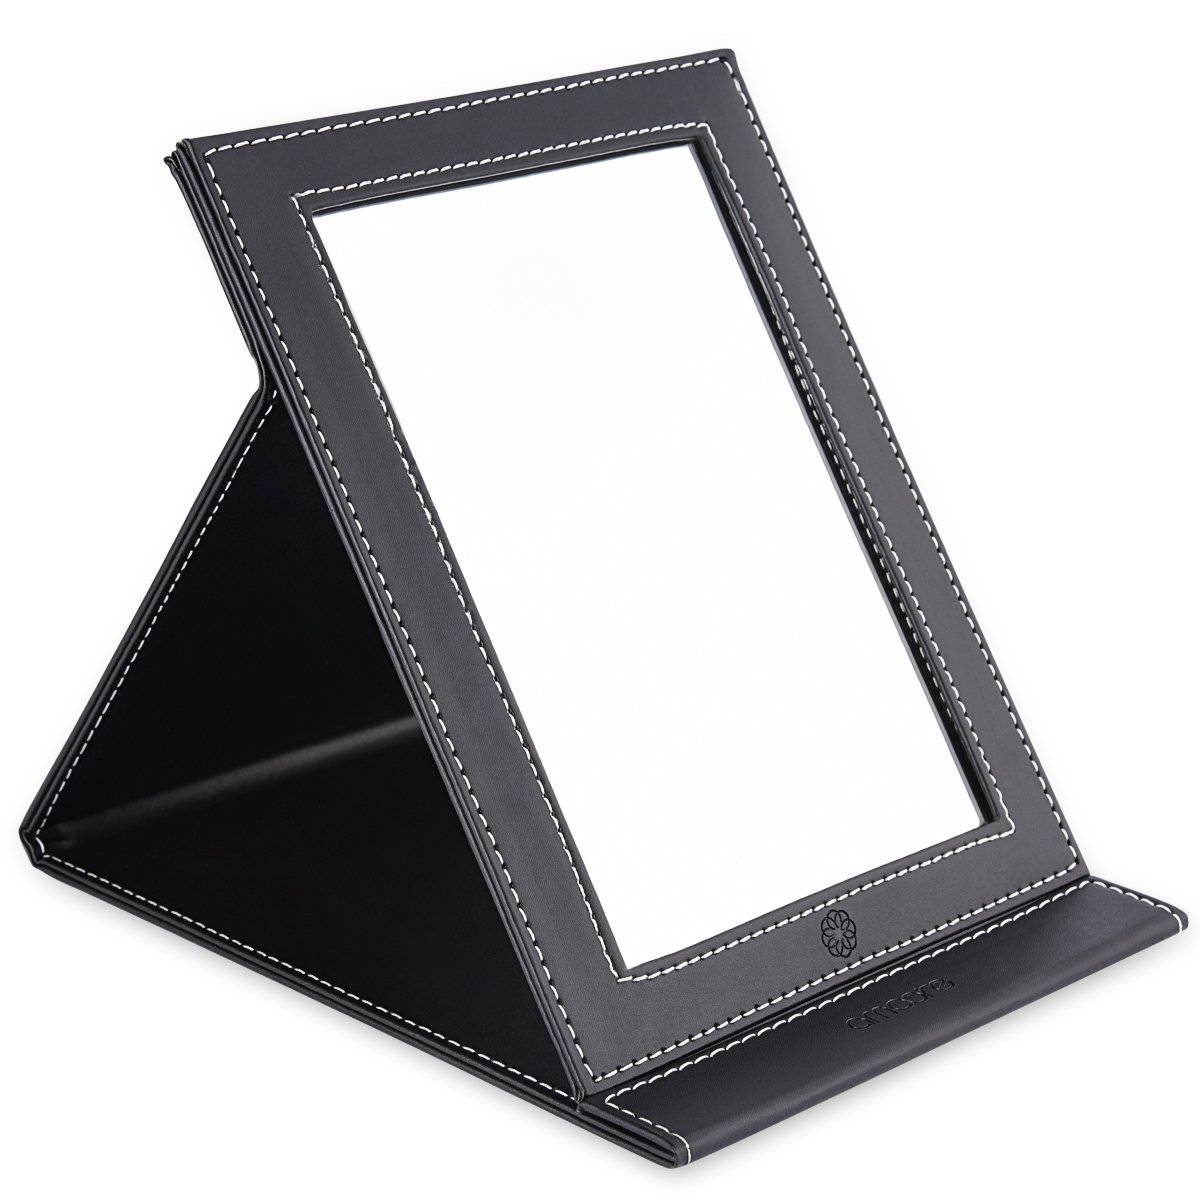 amoore Makeup Mirror Travel Mirror Vanity Mirror Folding Tabletop Mirror with PU Leather Cushioned Cover (Large, Black) BM-01